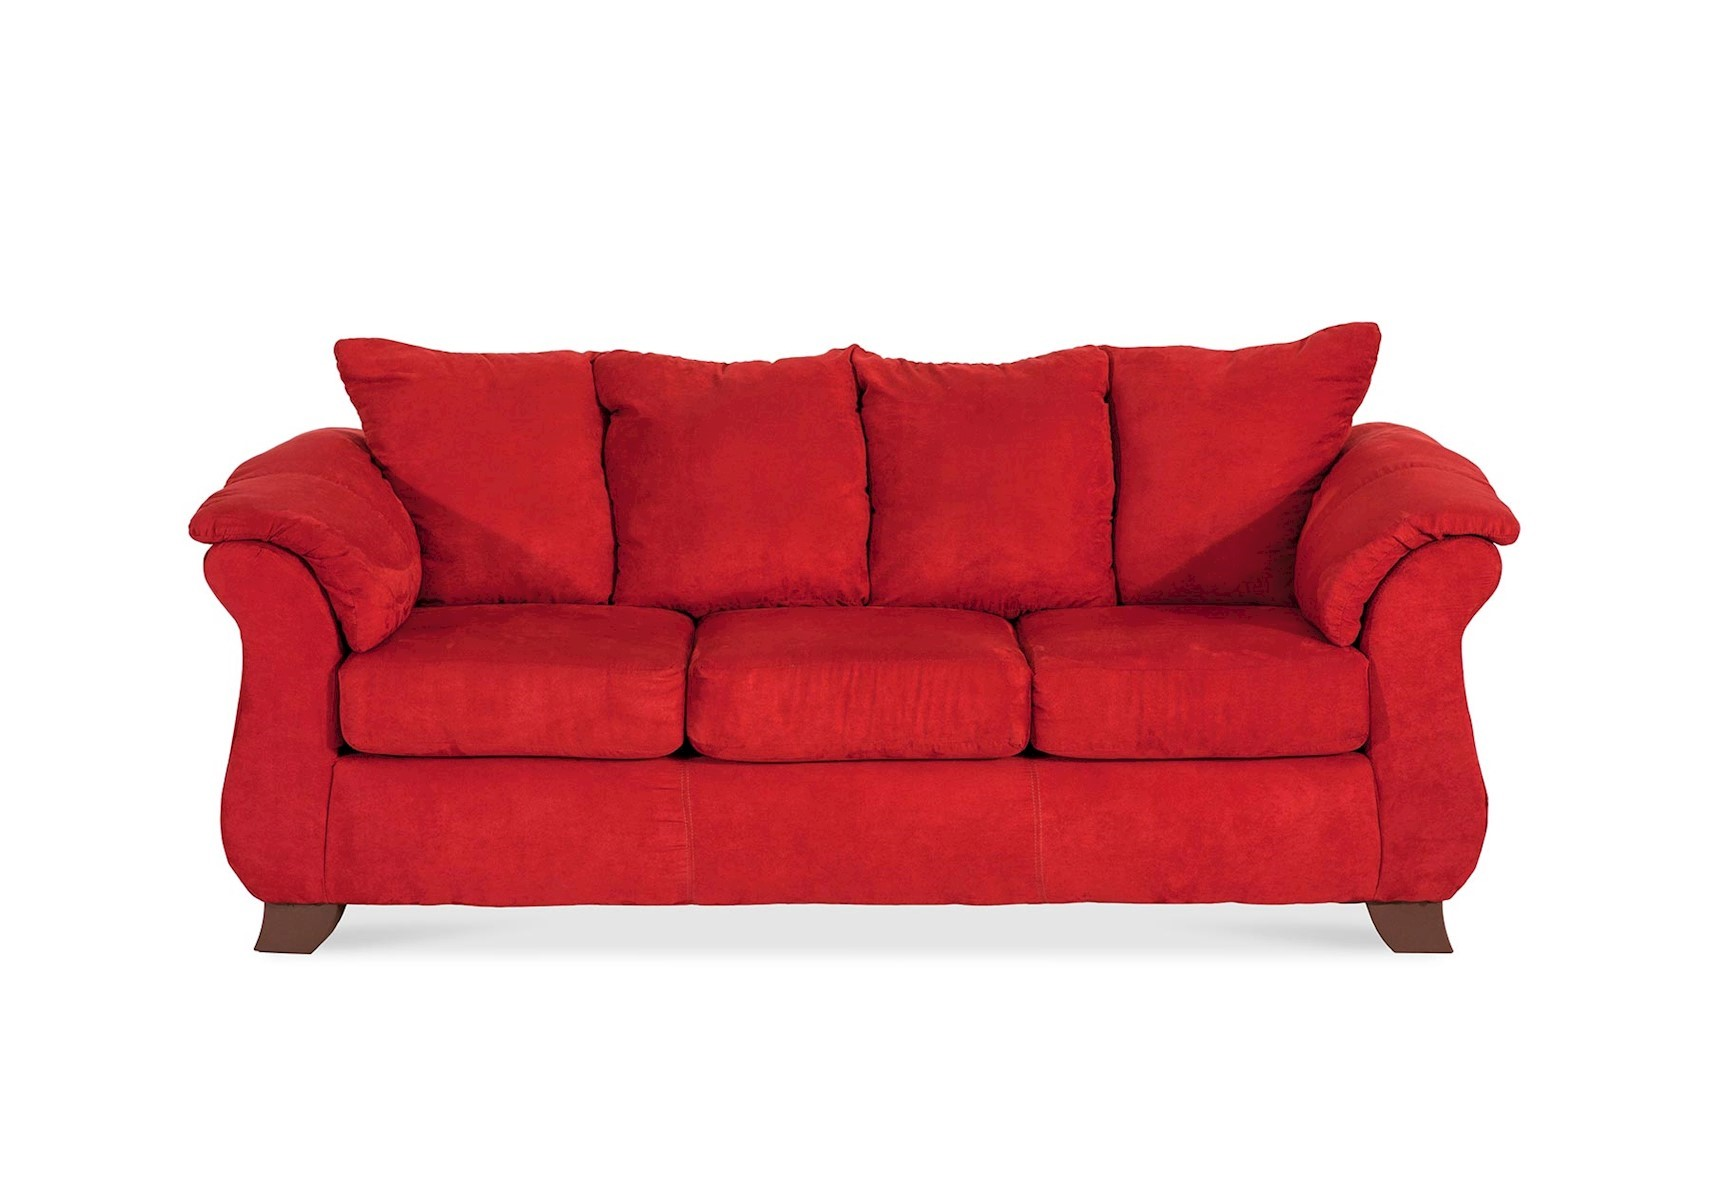 Lacks Sensations Sleeper Sofa